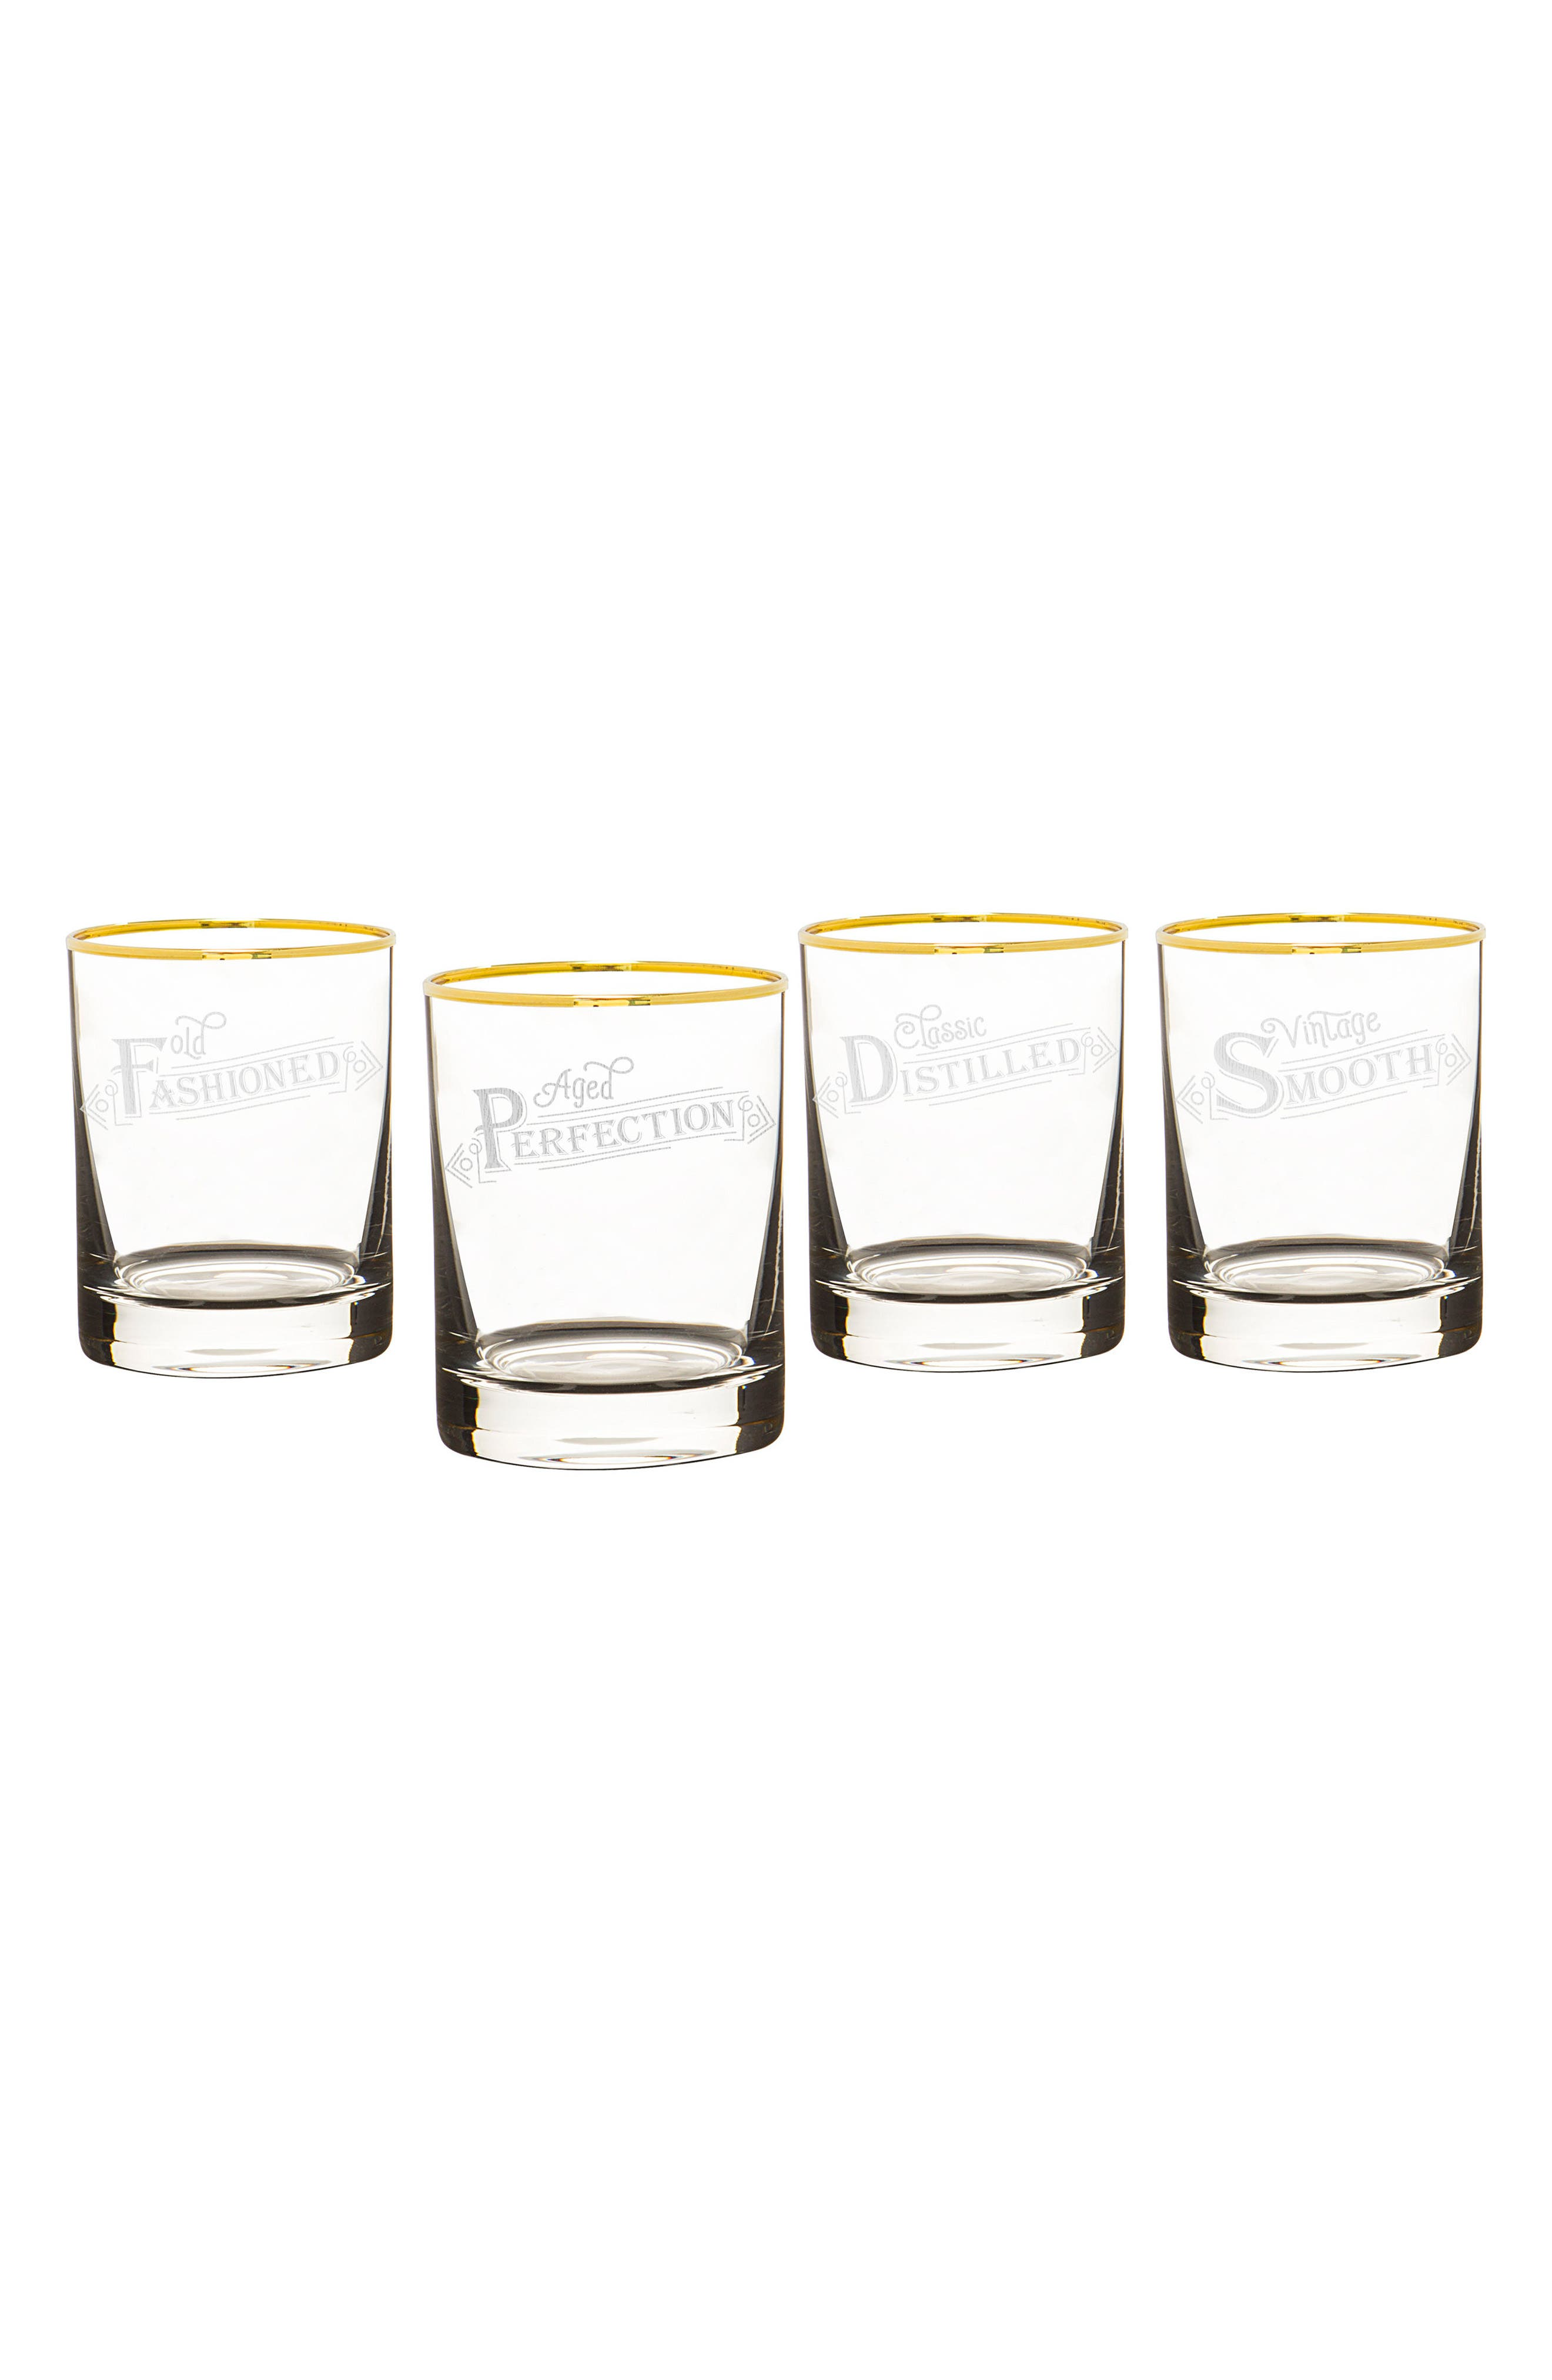 Main Image - Cathy's Concepts Set of 4 Gold Rim Old Fashioned Whiskey Glasses